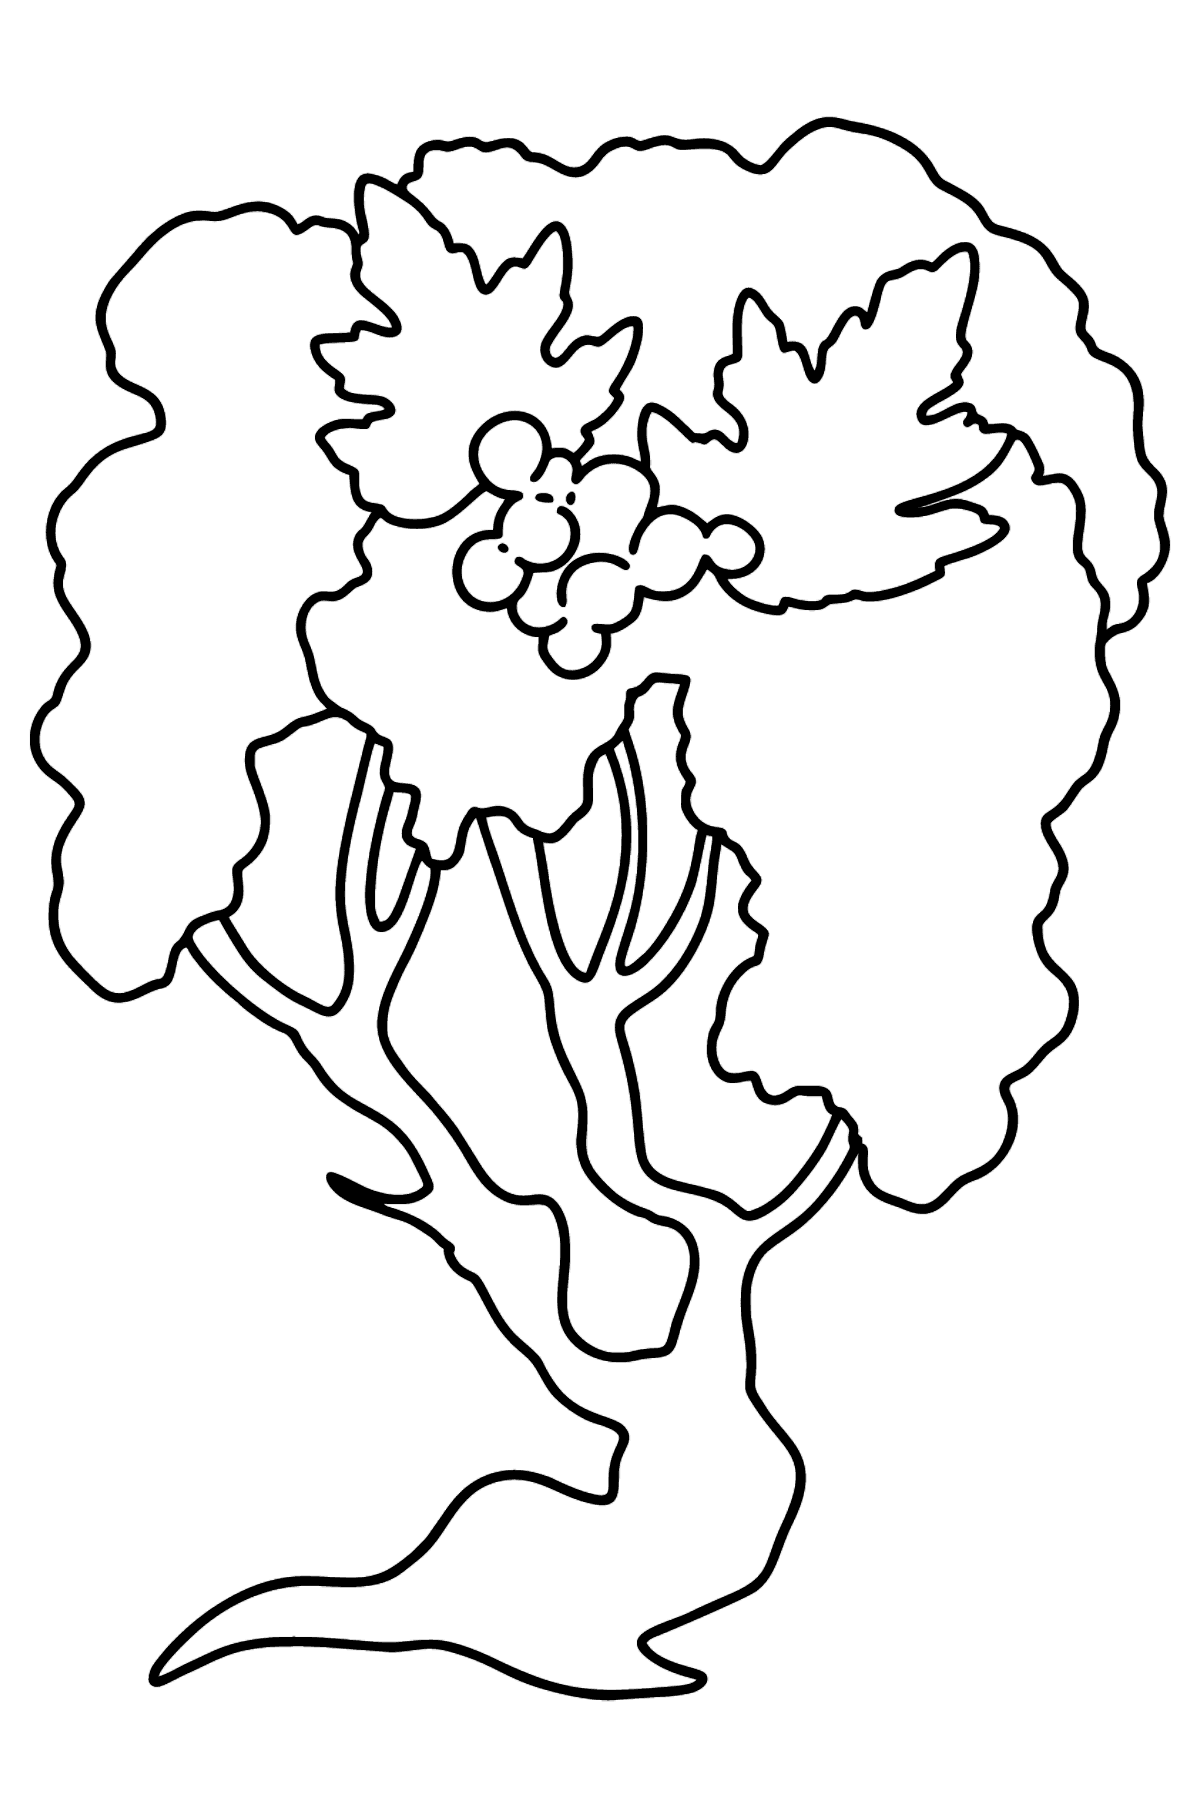 Hawthorn coloring page - Coloring Pages for Kids